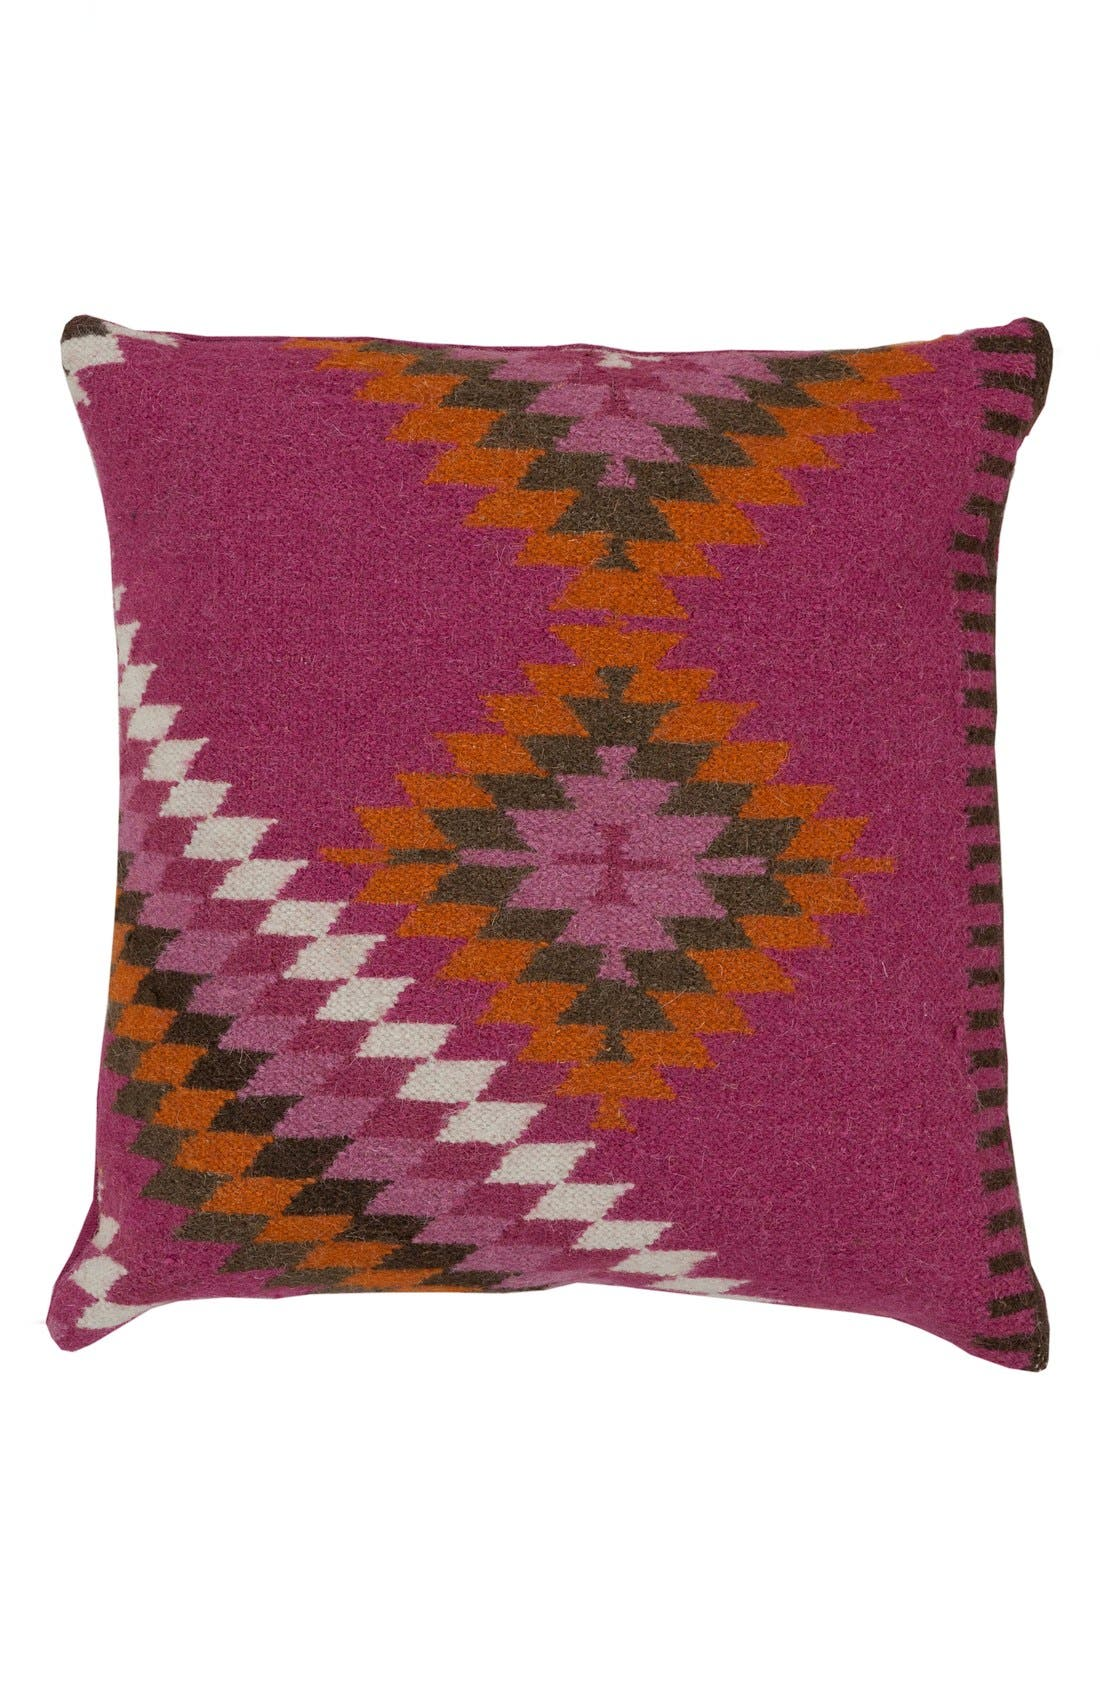 Surya Home Kilim Wool Accent Pillow Cover